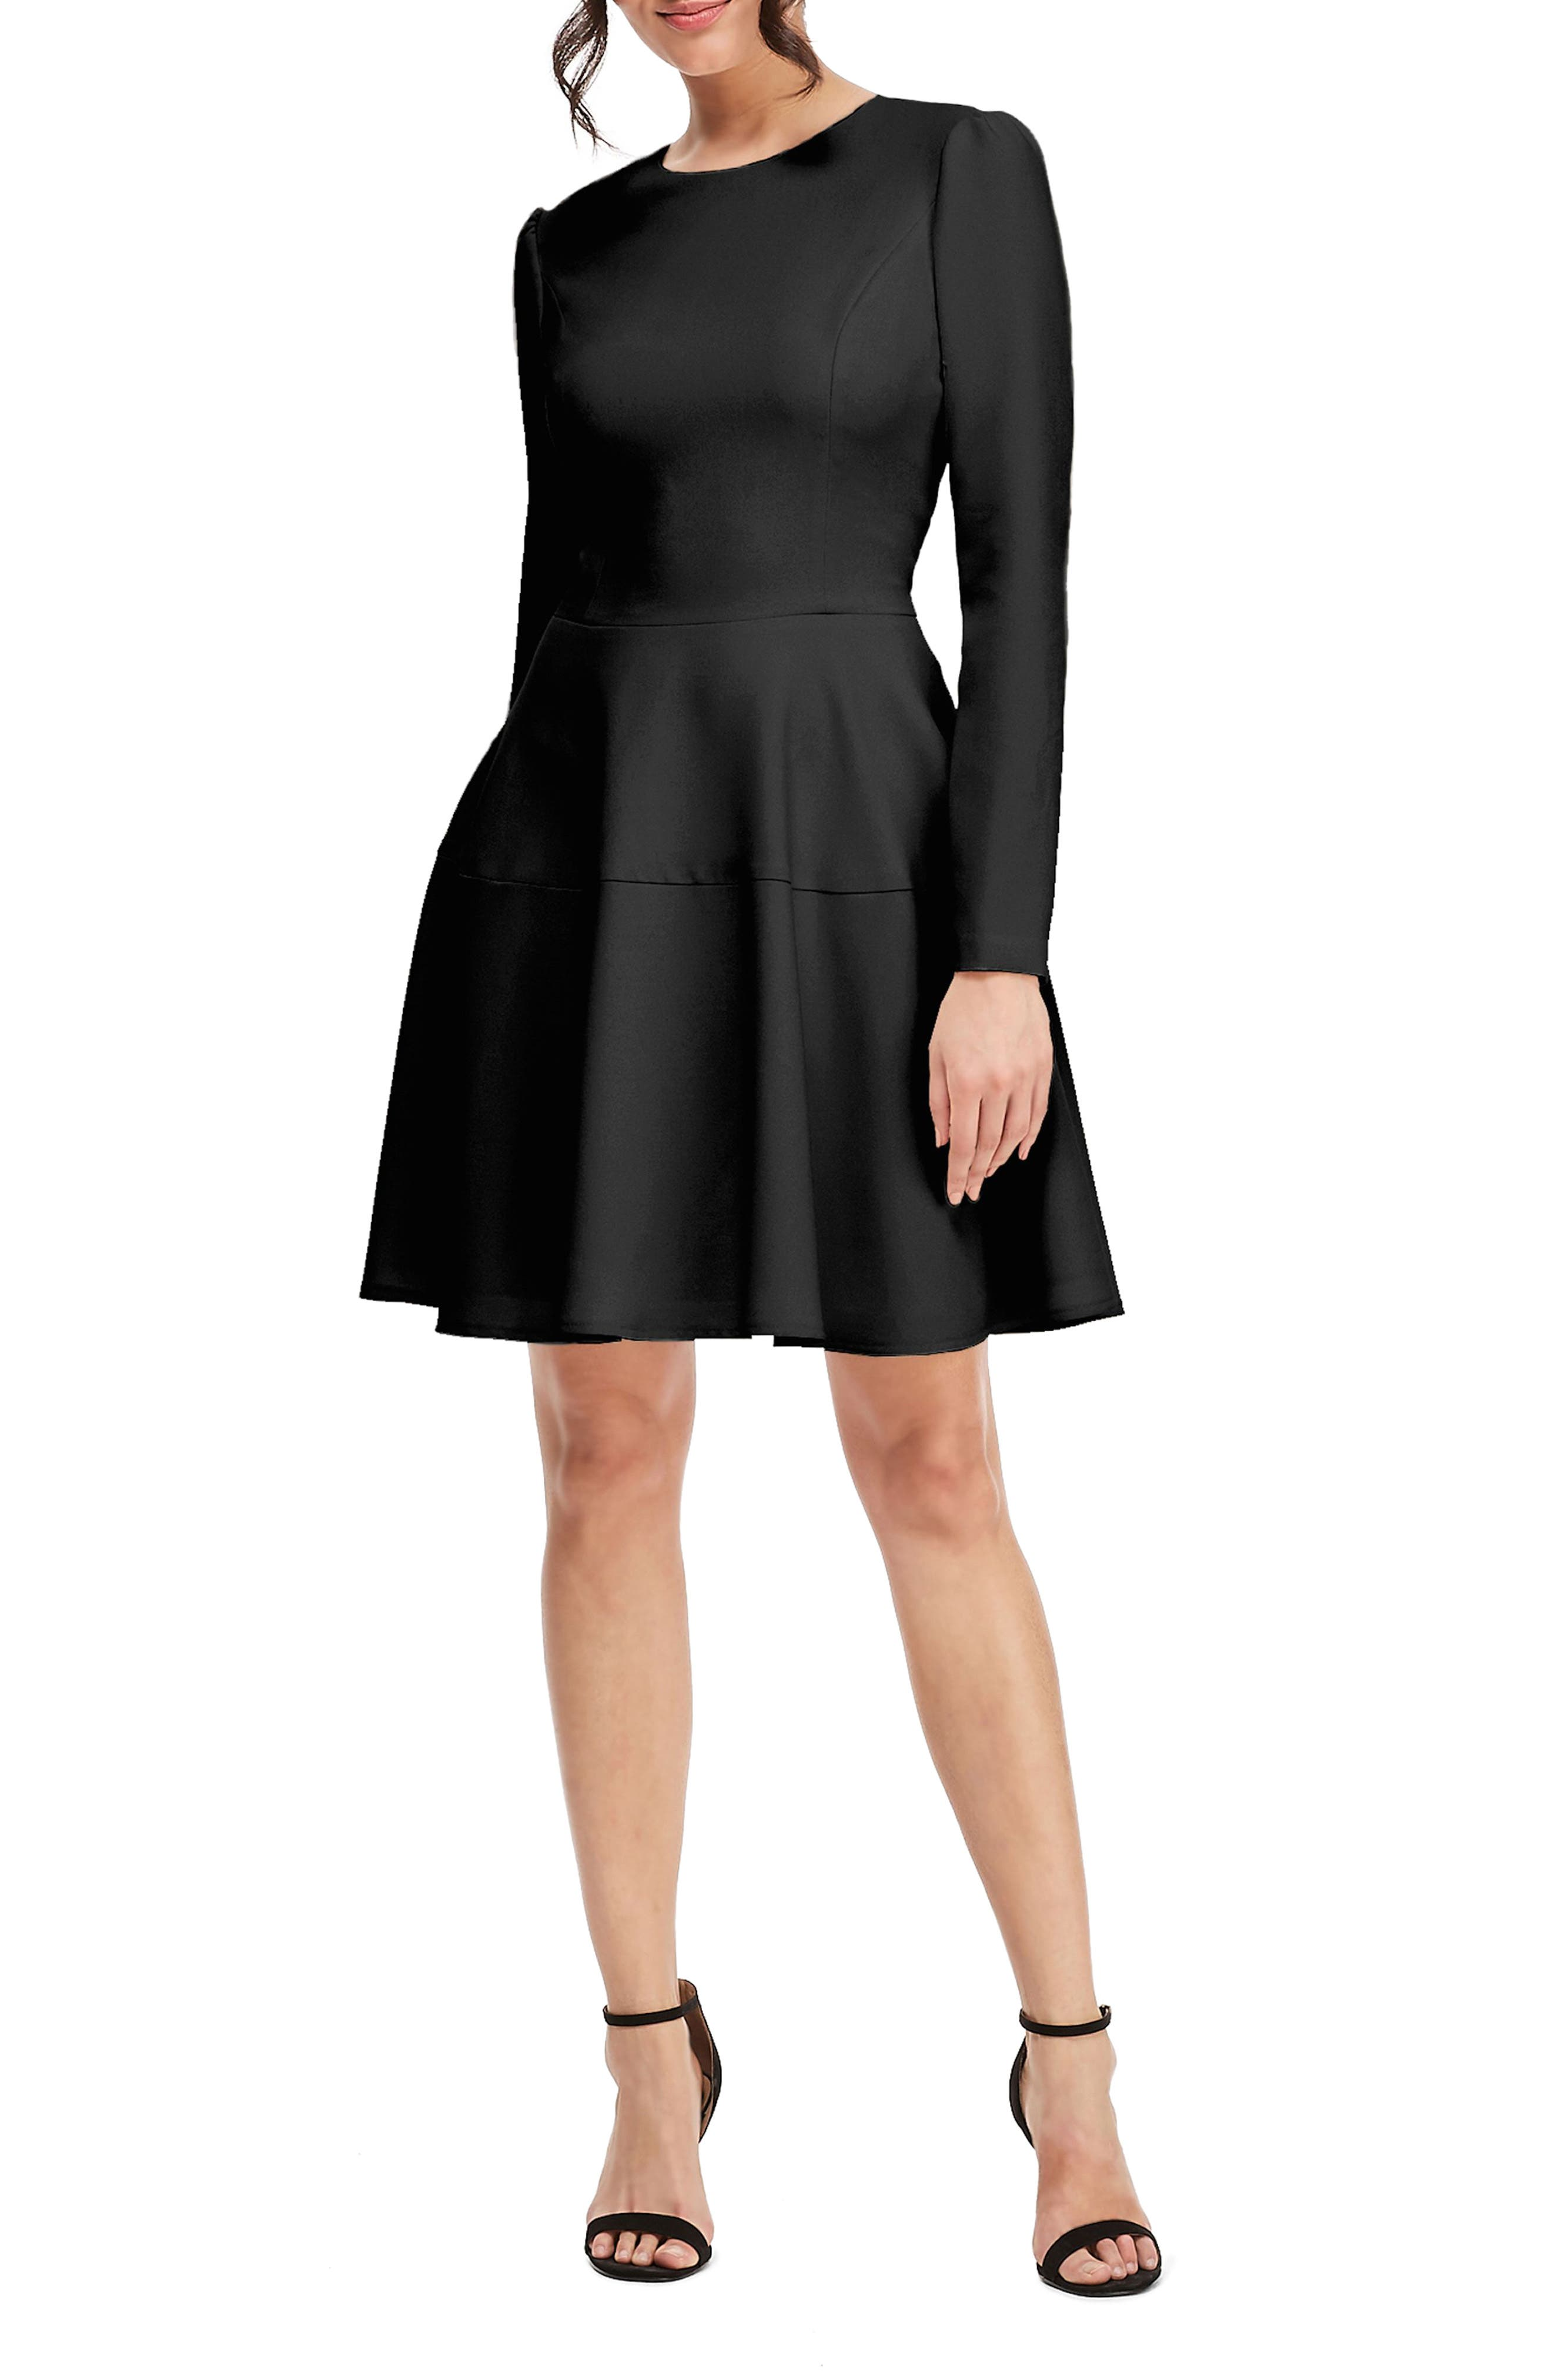 Celeste Fit & Flare Dress by Gal Meets Glam Collection